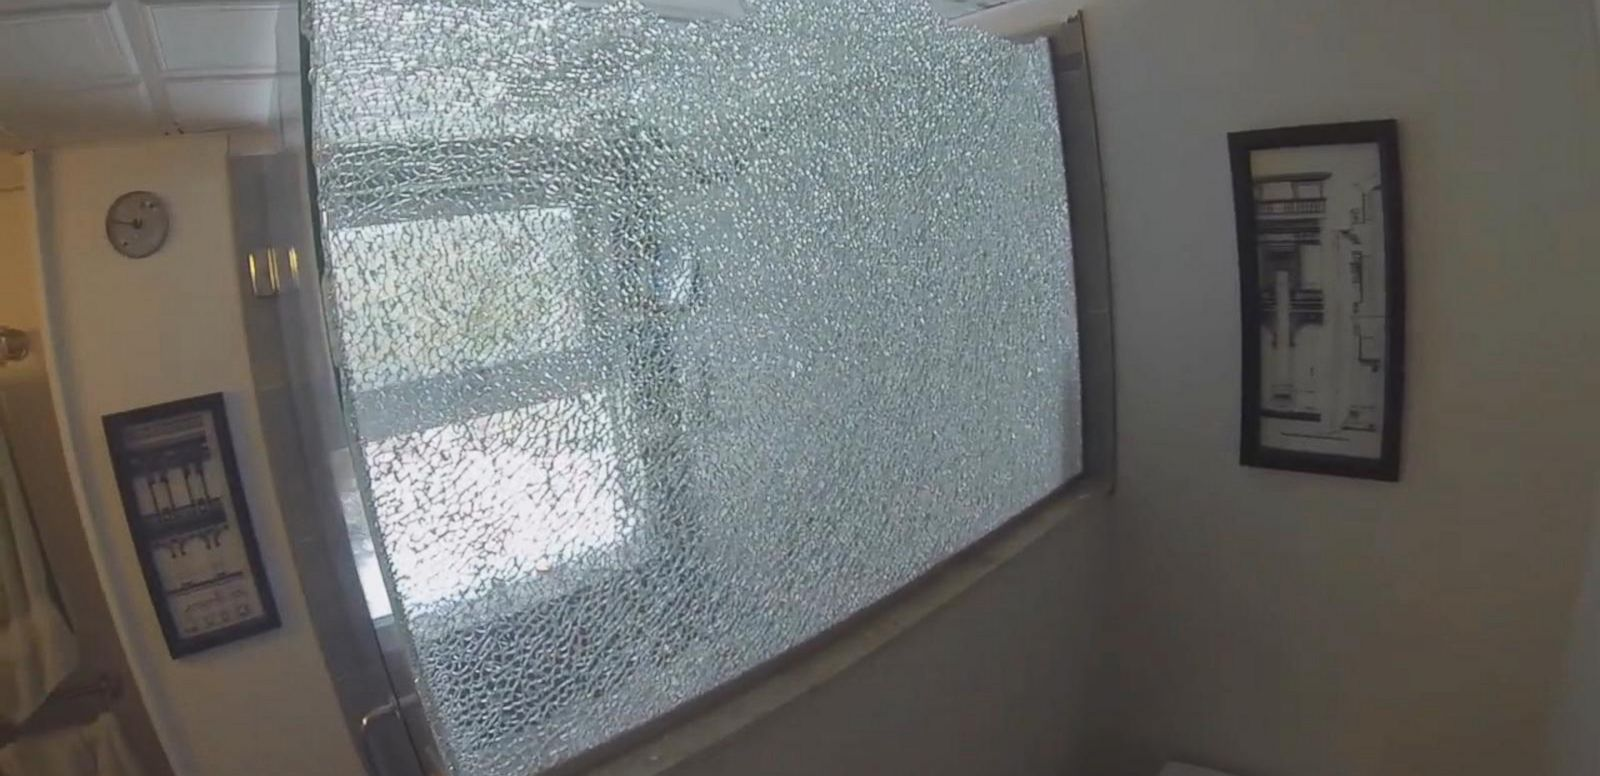 VIDEO: Protect Yourself From Shattering Shower Doors